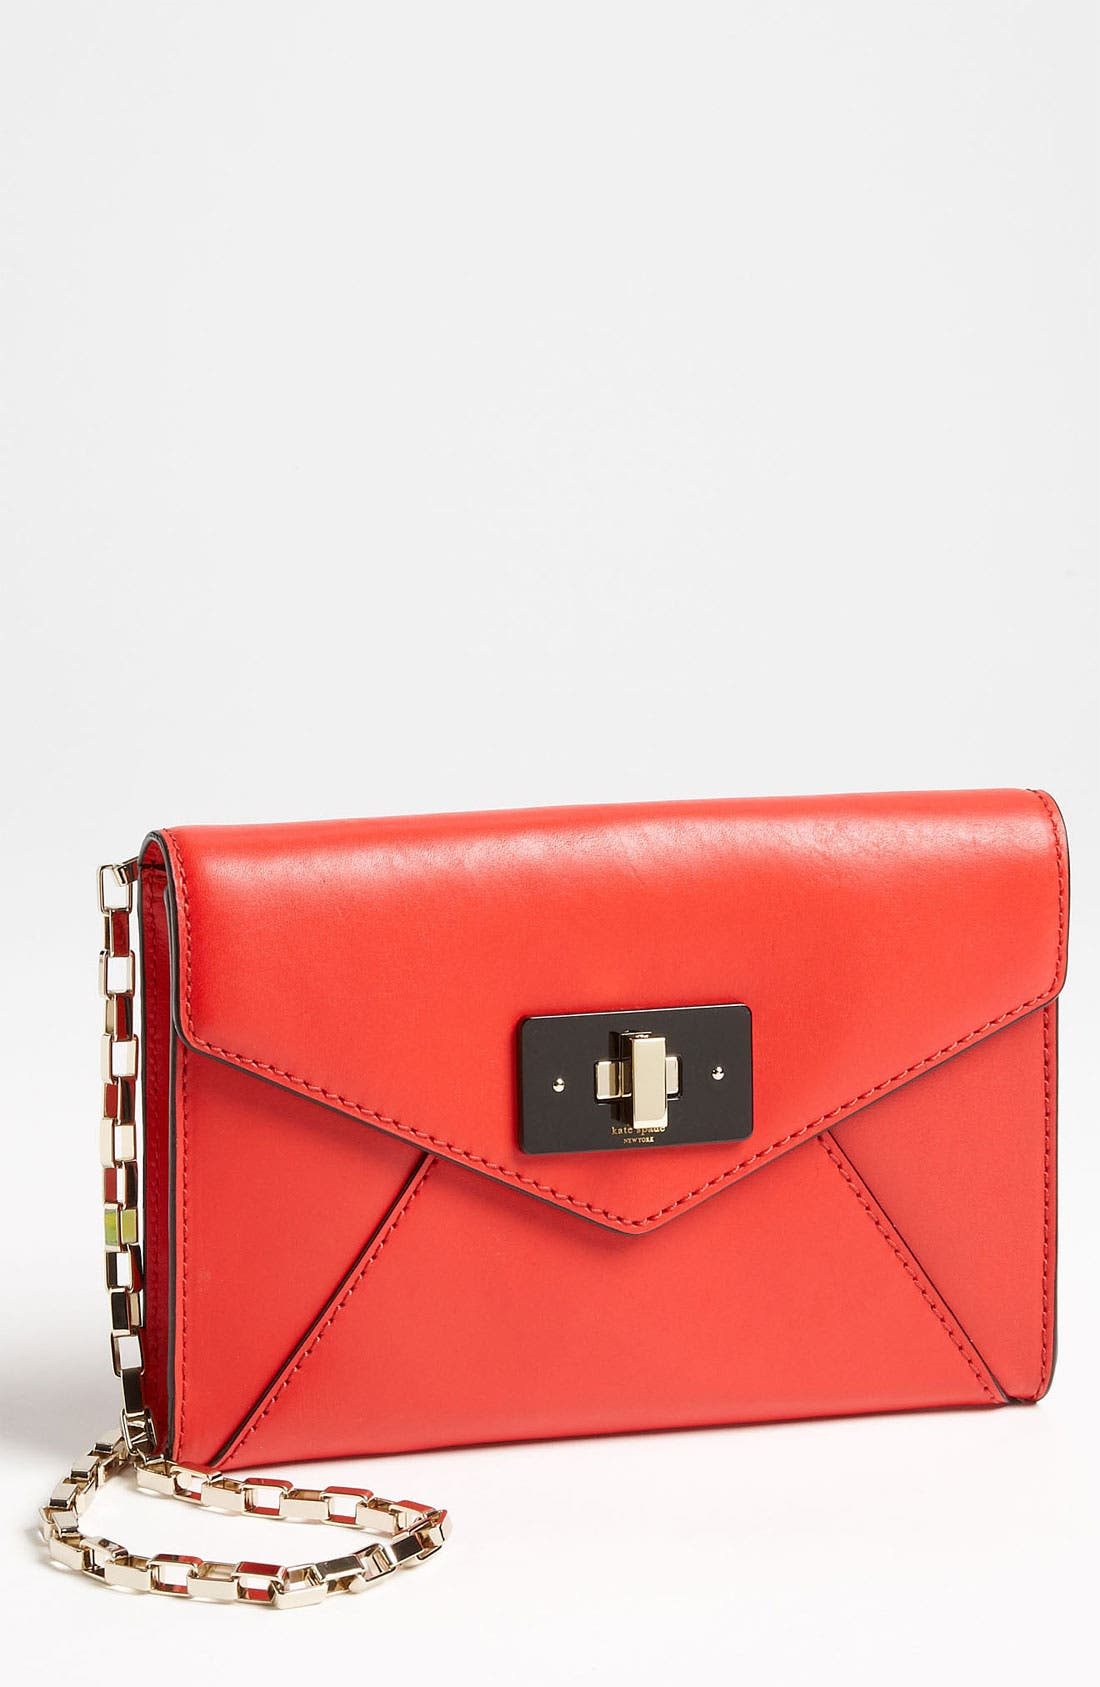 Alternate Image 1 Selected - kate spade new york 'post street - sonia' crossbody bag